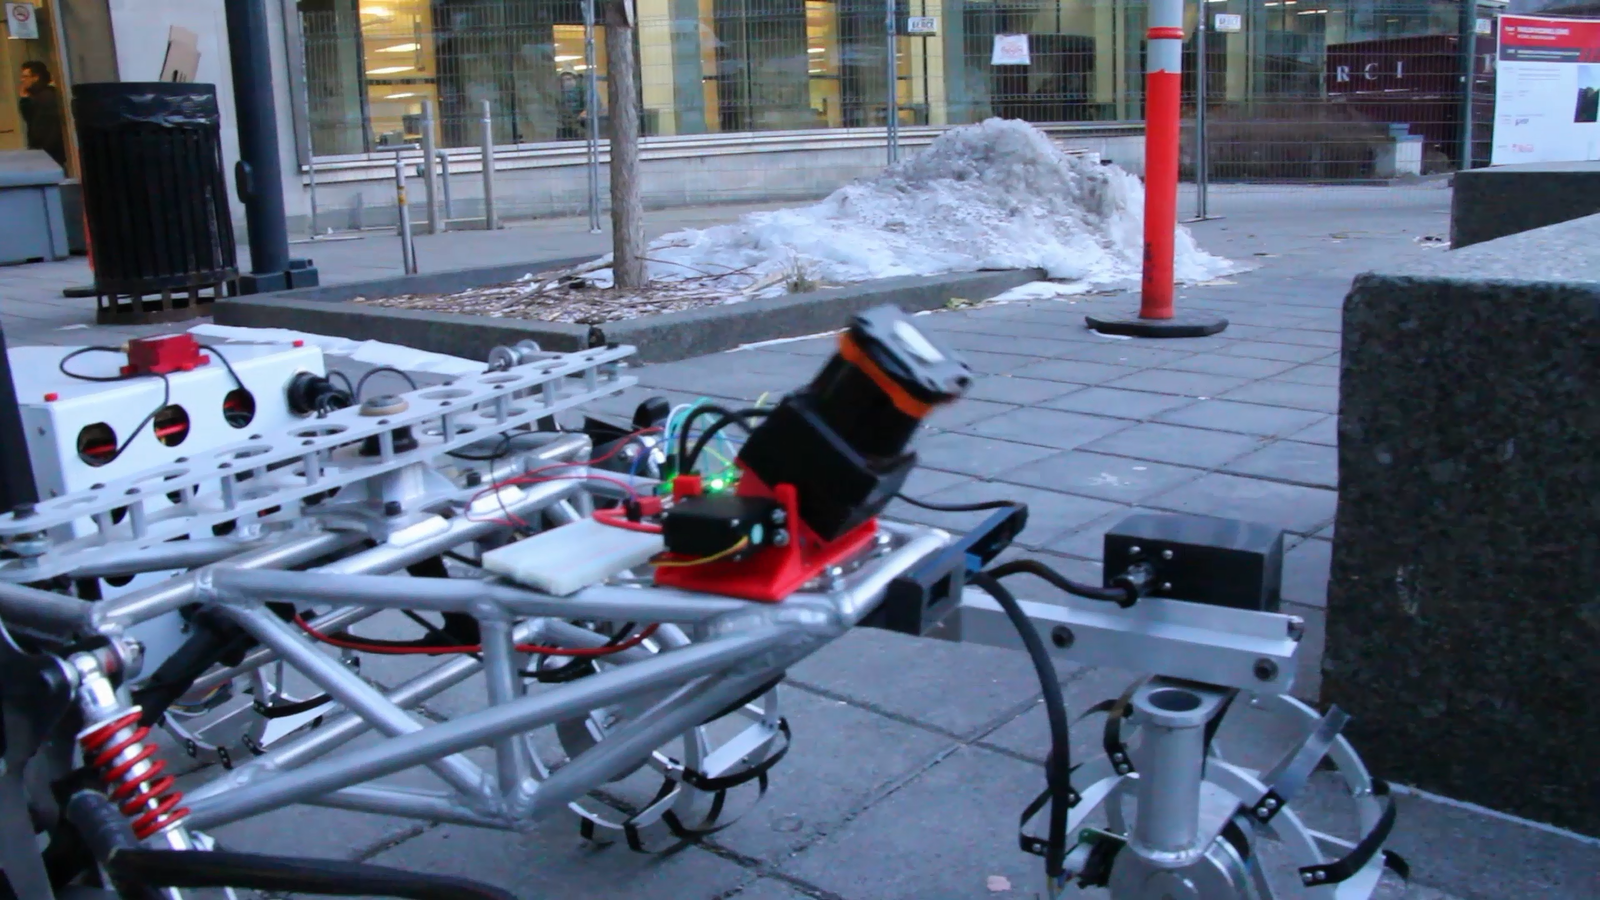 For the autonomous navigation task, our rover uses a tilting LiDAR and RGBD camera for obstacle avoidance (on this picture) and also uses other instruments such as an attitude sensor and GPS for general odometry and path planning.